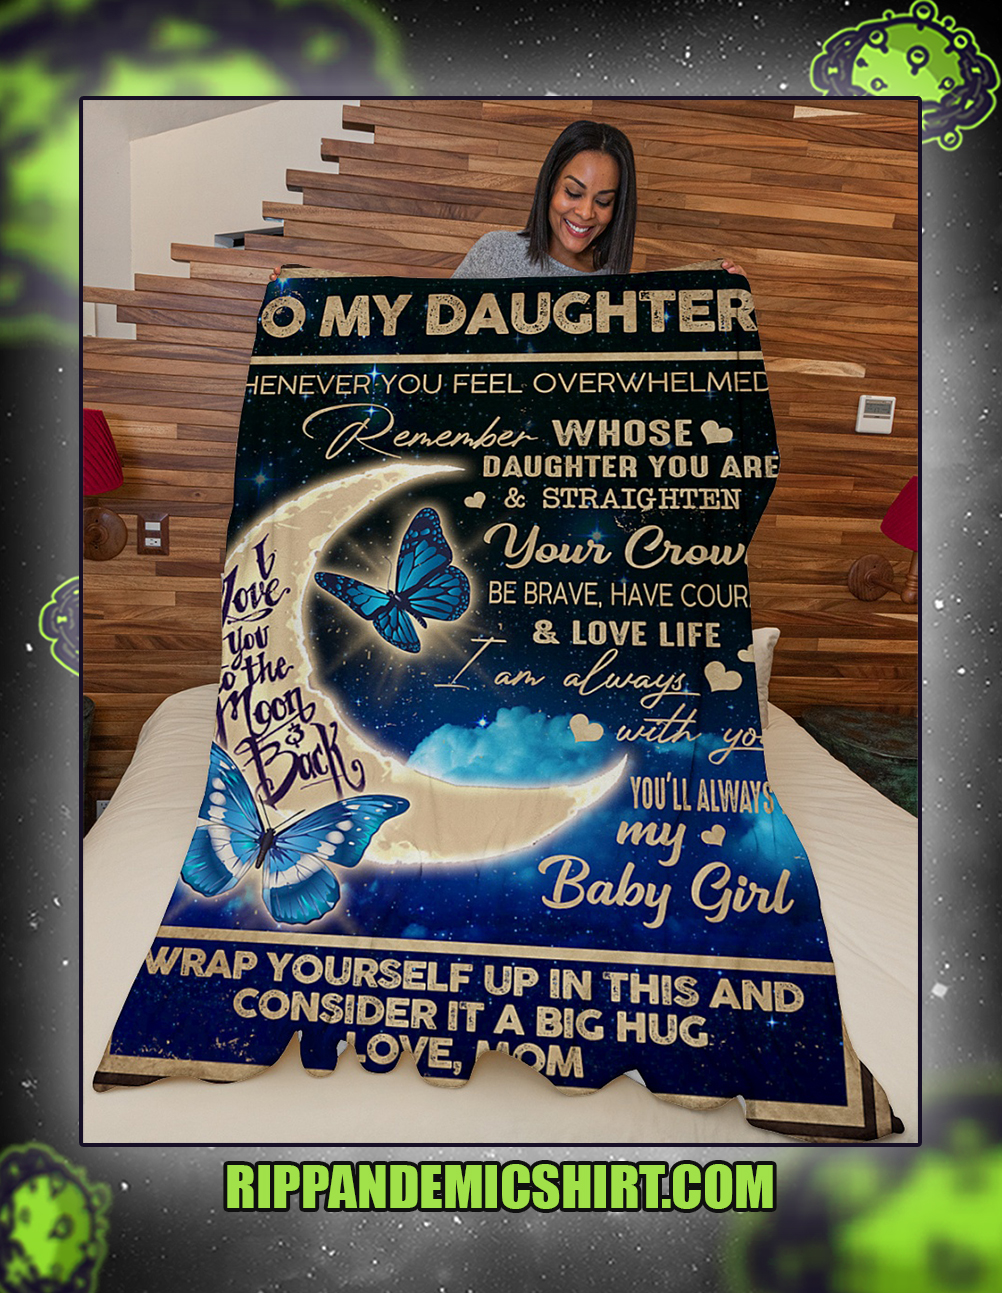 Butterfly moon to my daughter whenever you feel overwhelmed blanket x-large